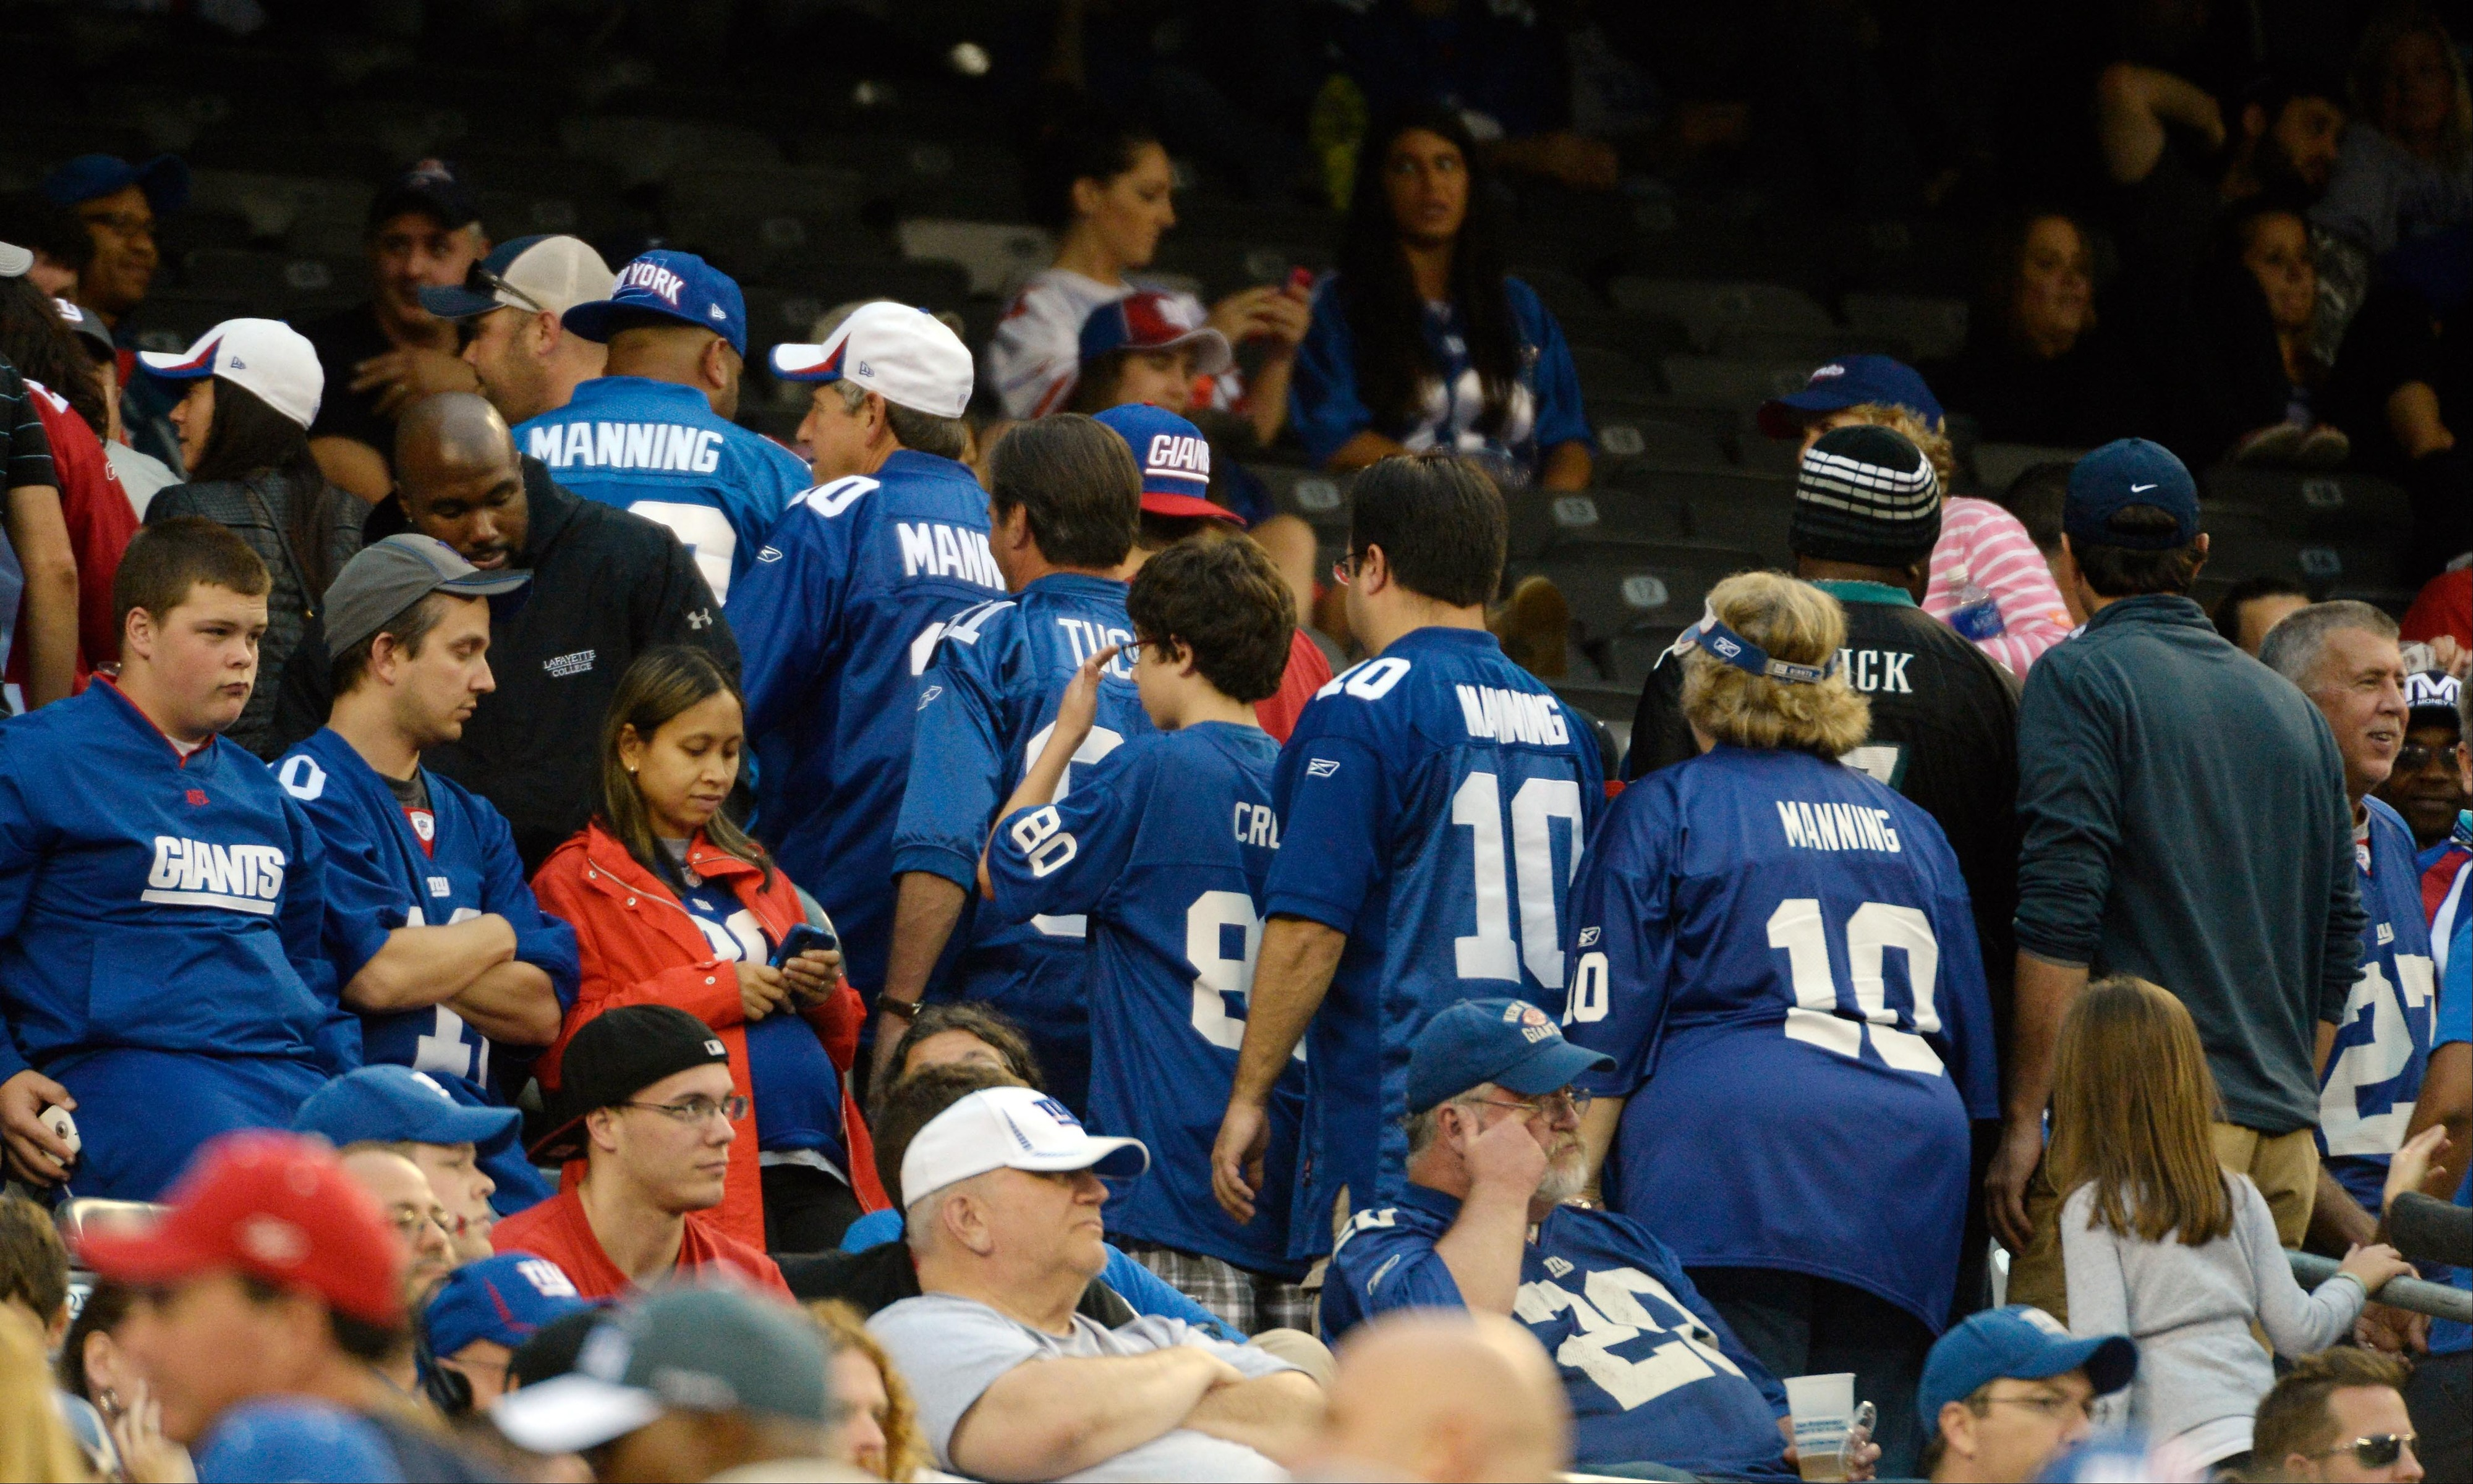 Giants' fans head for the exit in the fourth quarter on Sunday.